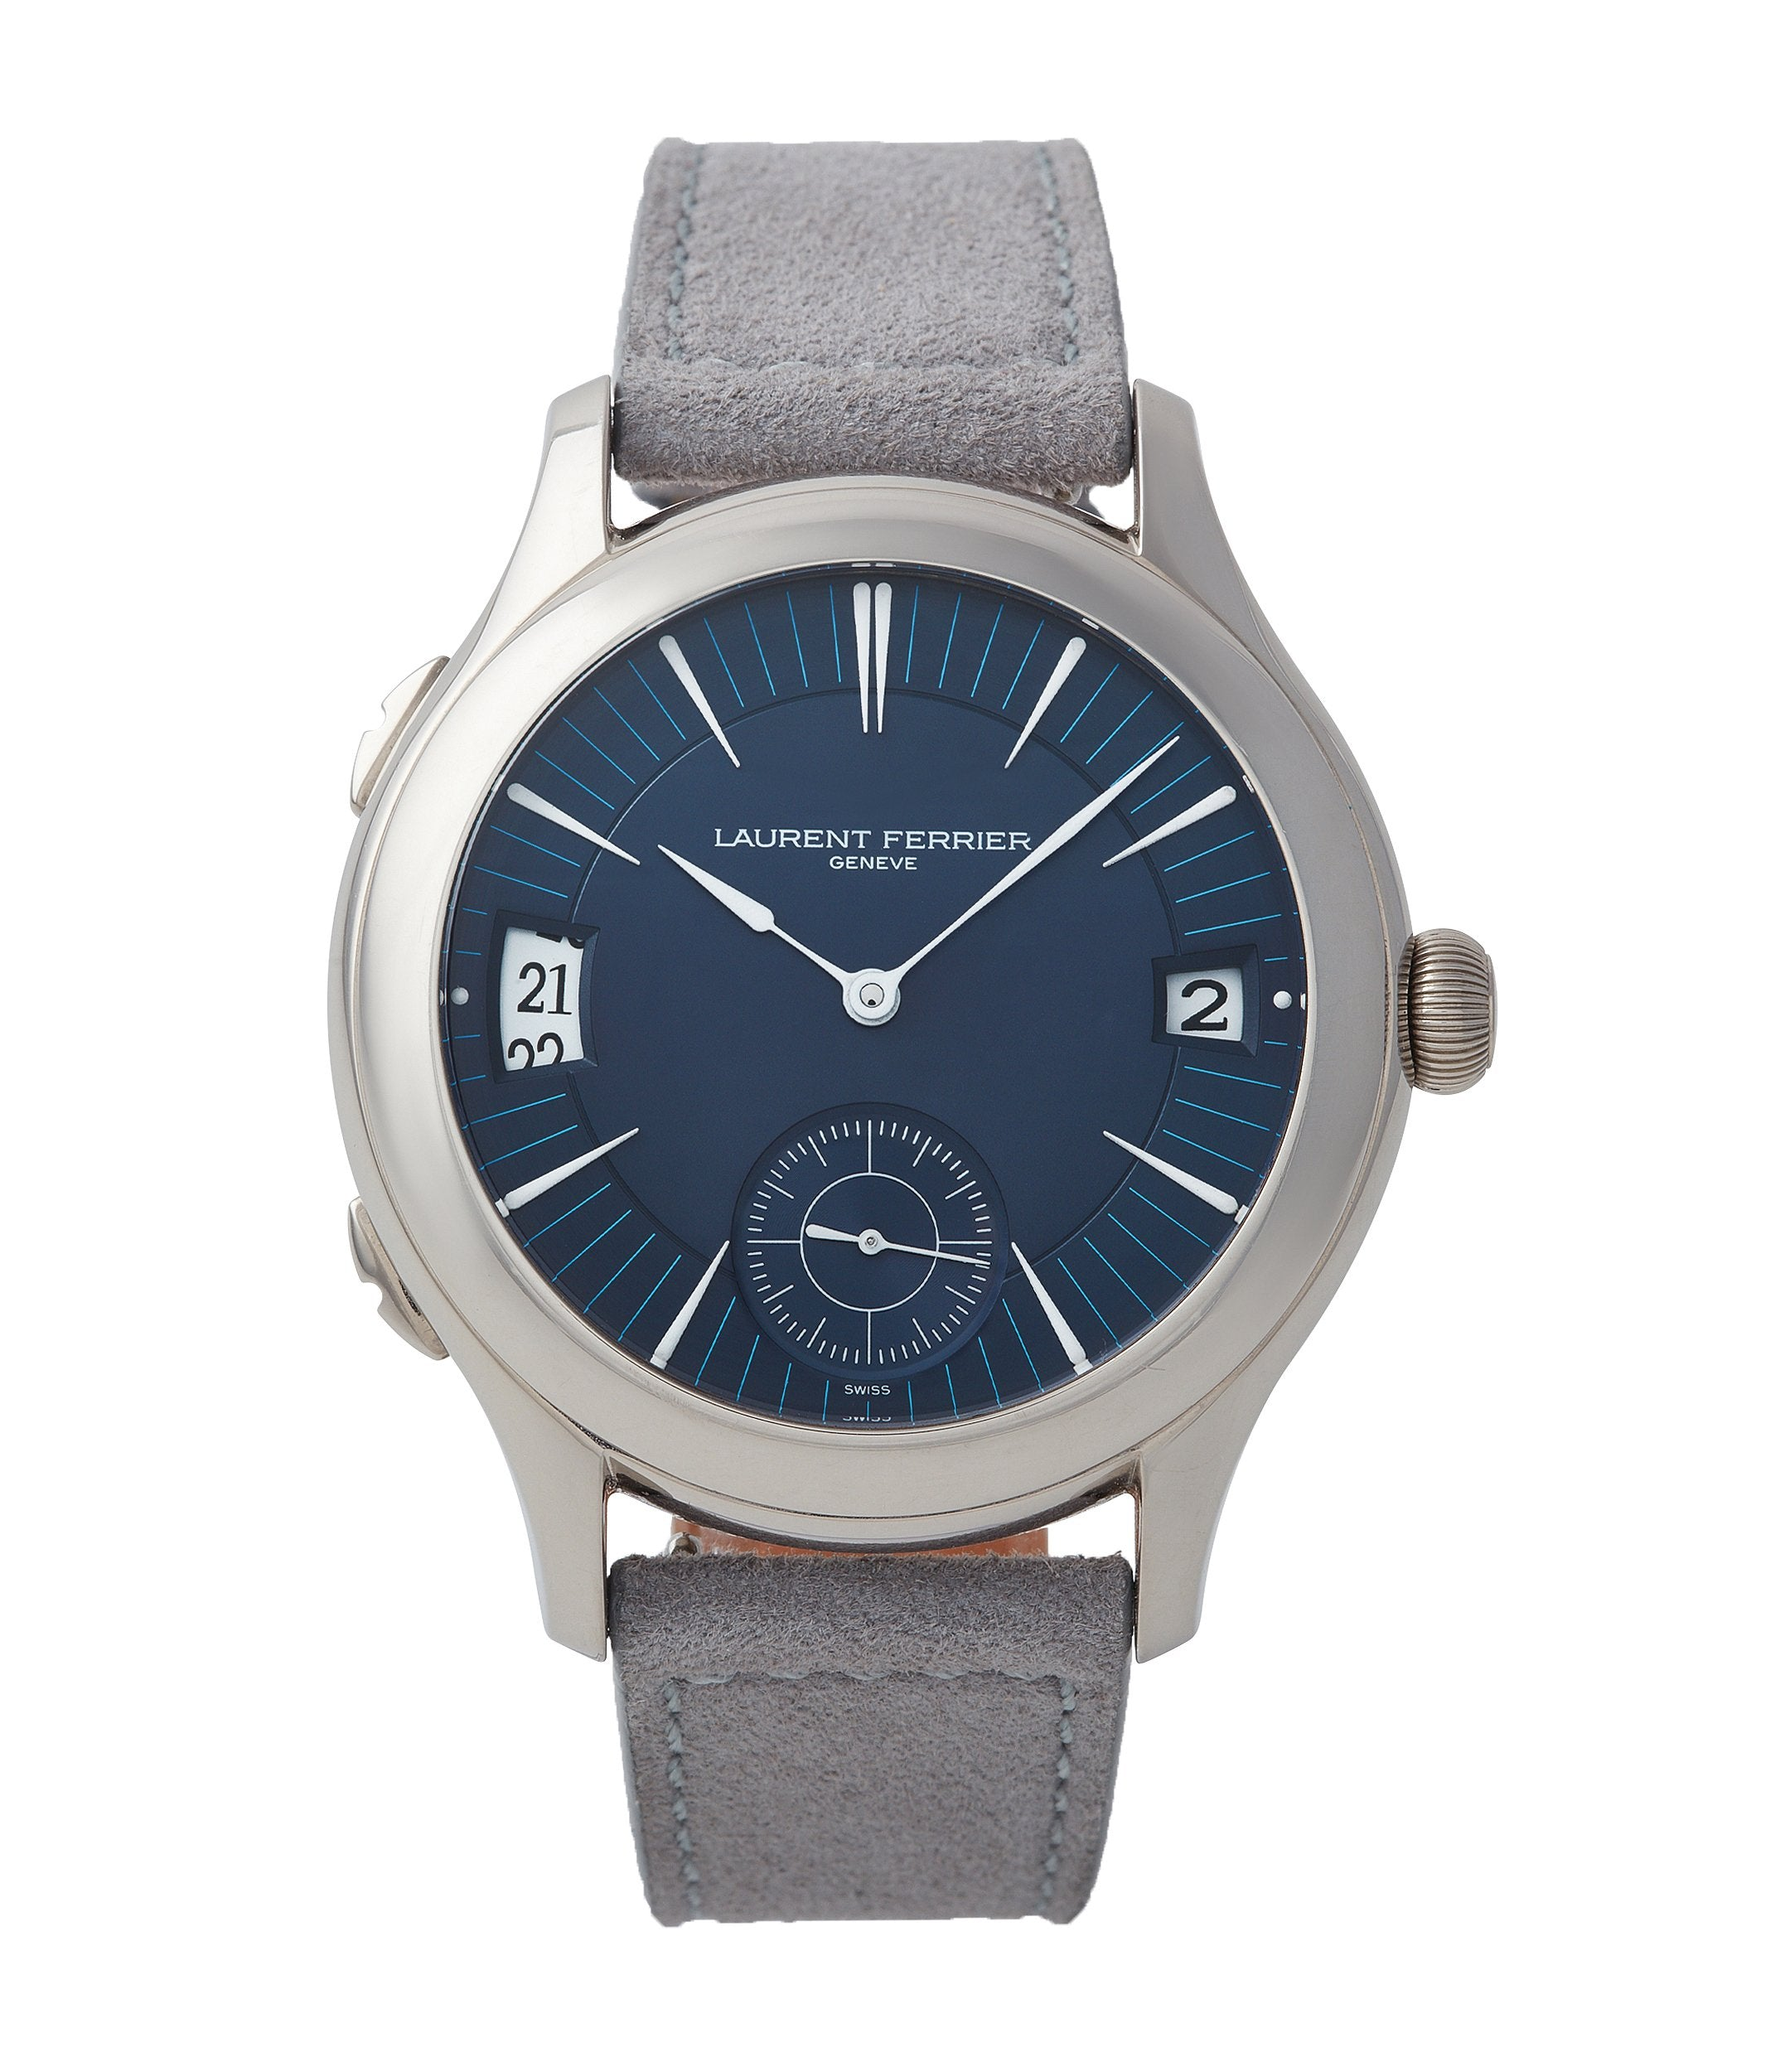 second-hand Laurent Ferrier Galet Traveller Micro-rotor blue dial pre-owned watch for sale online A Collected Man London UK specialist independent watchmakers